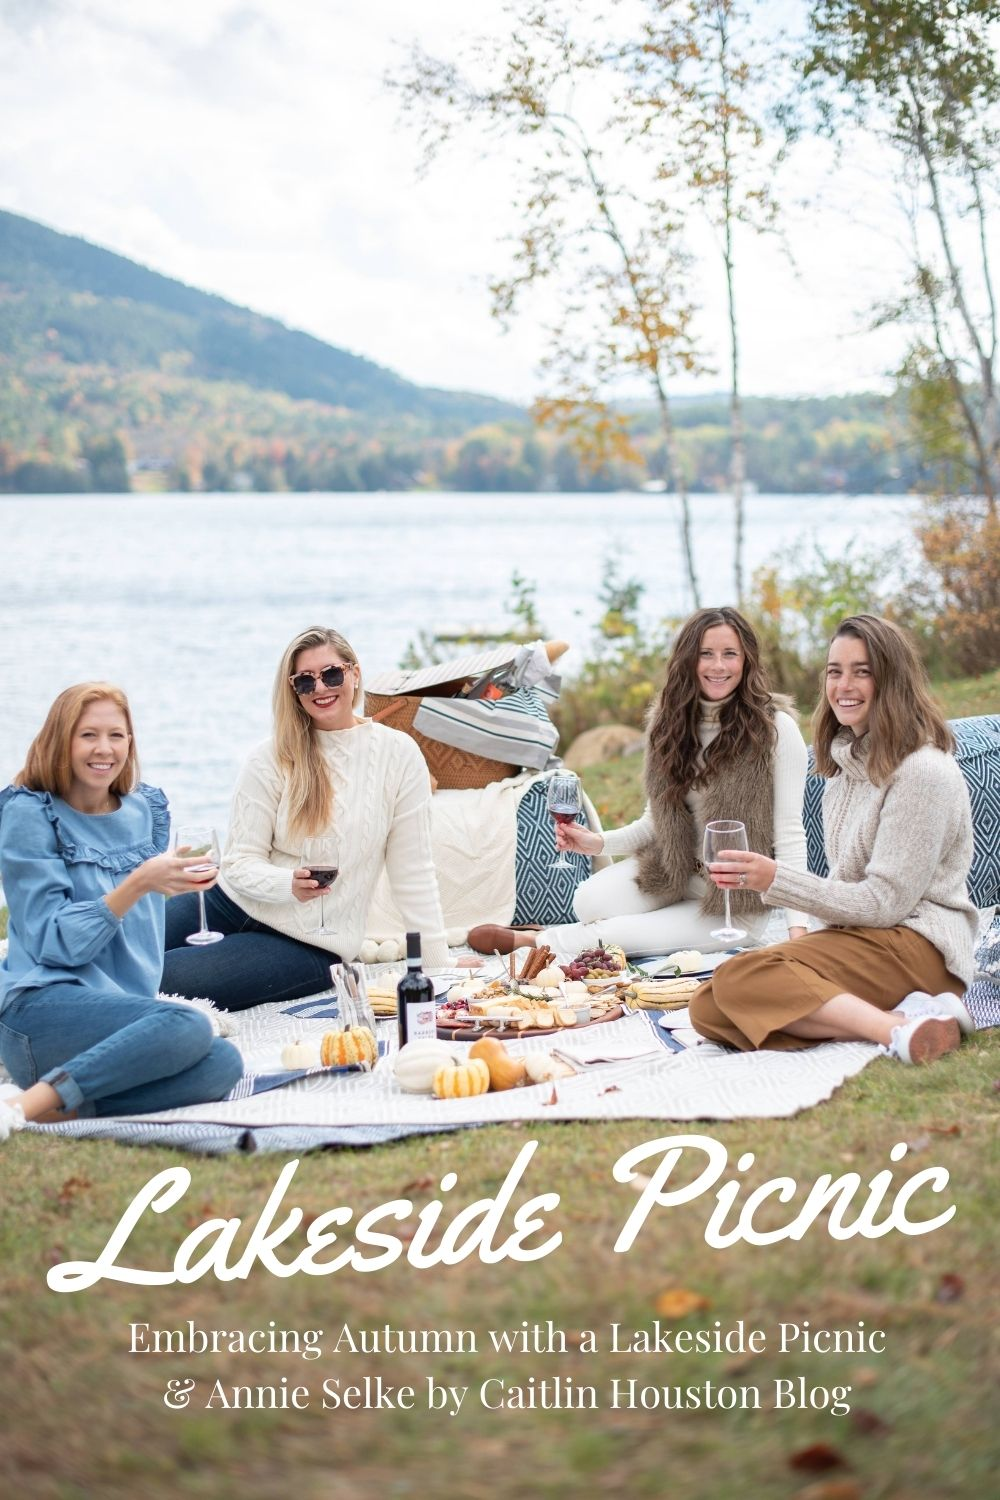 girls with wine glasses sitting on outdoor rugs at a lakeside picnic in Vermont